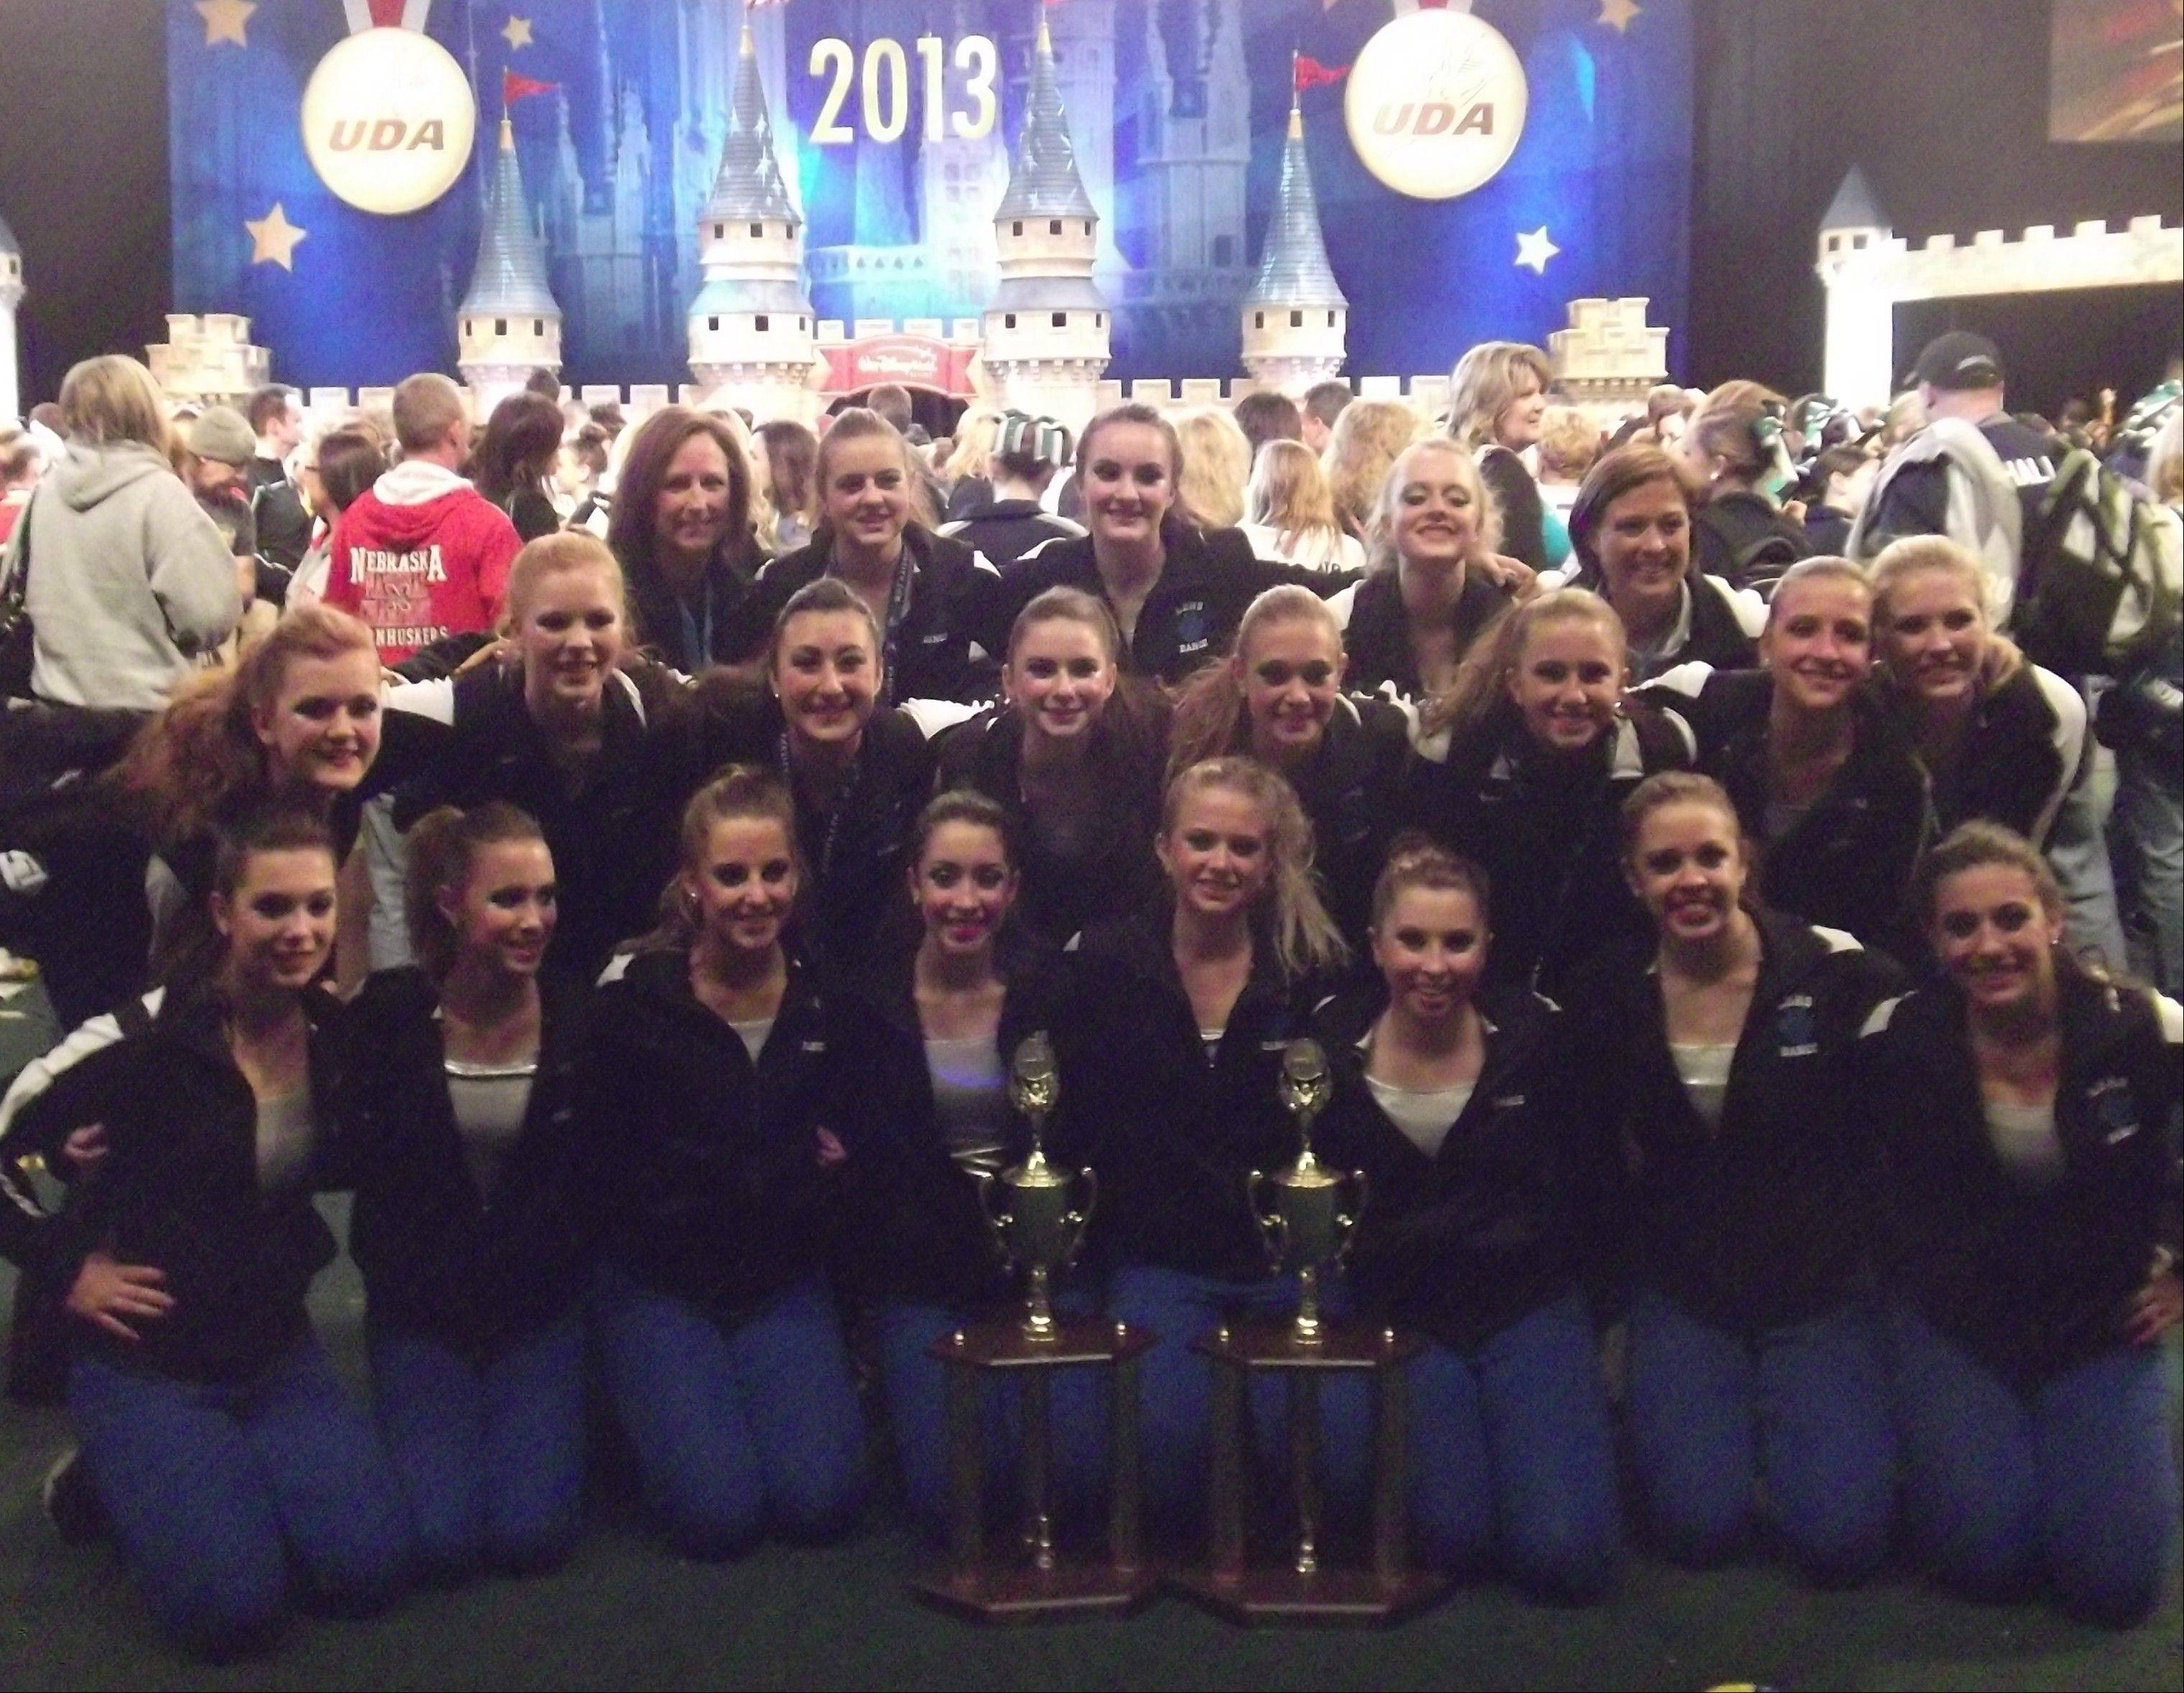 The Lake Zurich High School Varsity Dance Team won two trophies at the 2013 UDA National Dance Team Championship at the Walt Disney World Resort in Orlando, Fla.